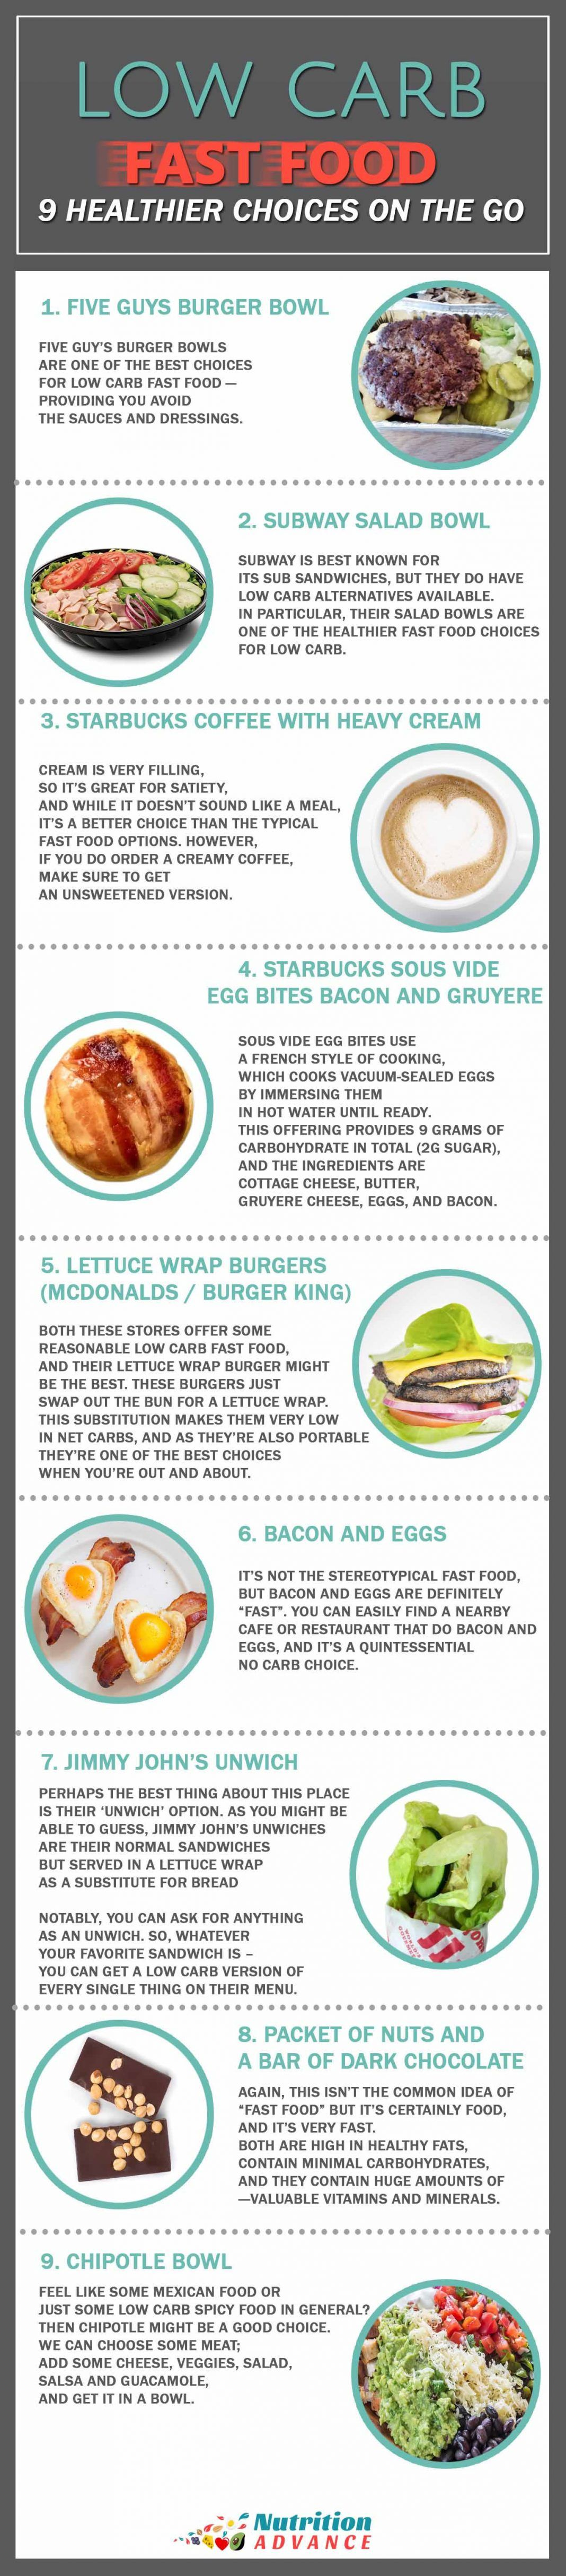 Keto and Fast Food: On the Go   Keto foods, Keto and Low carb